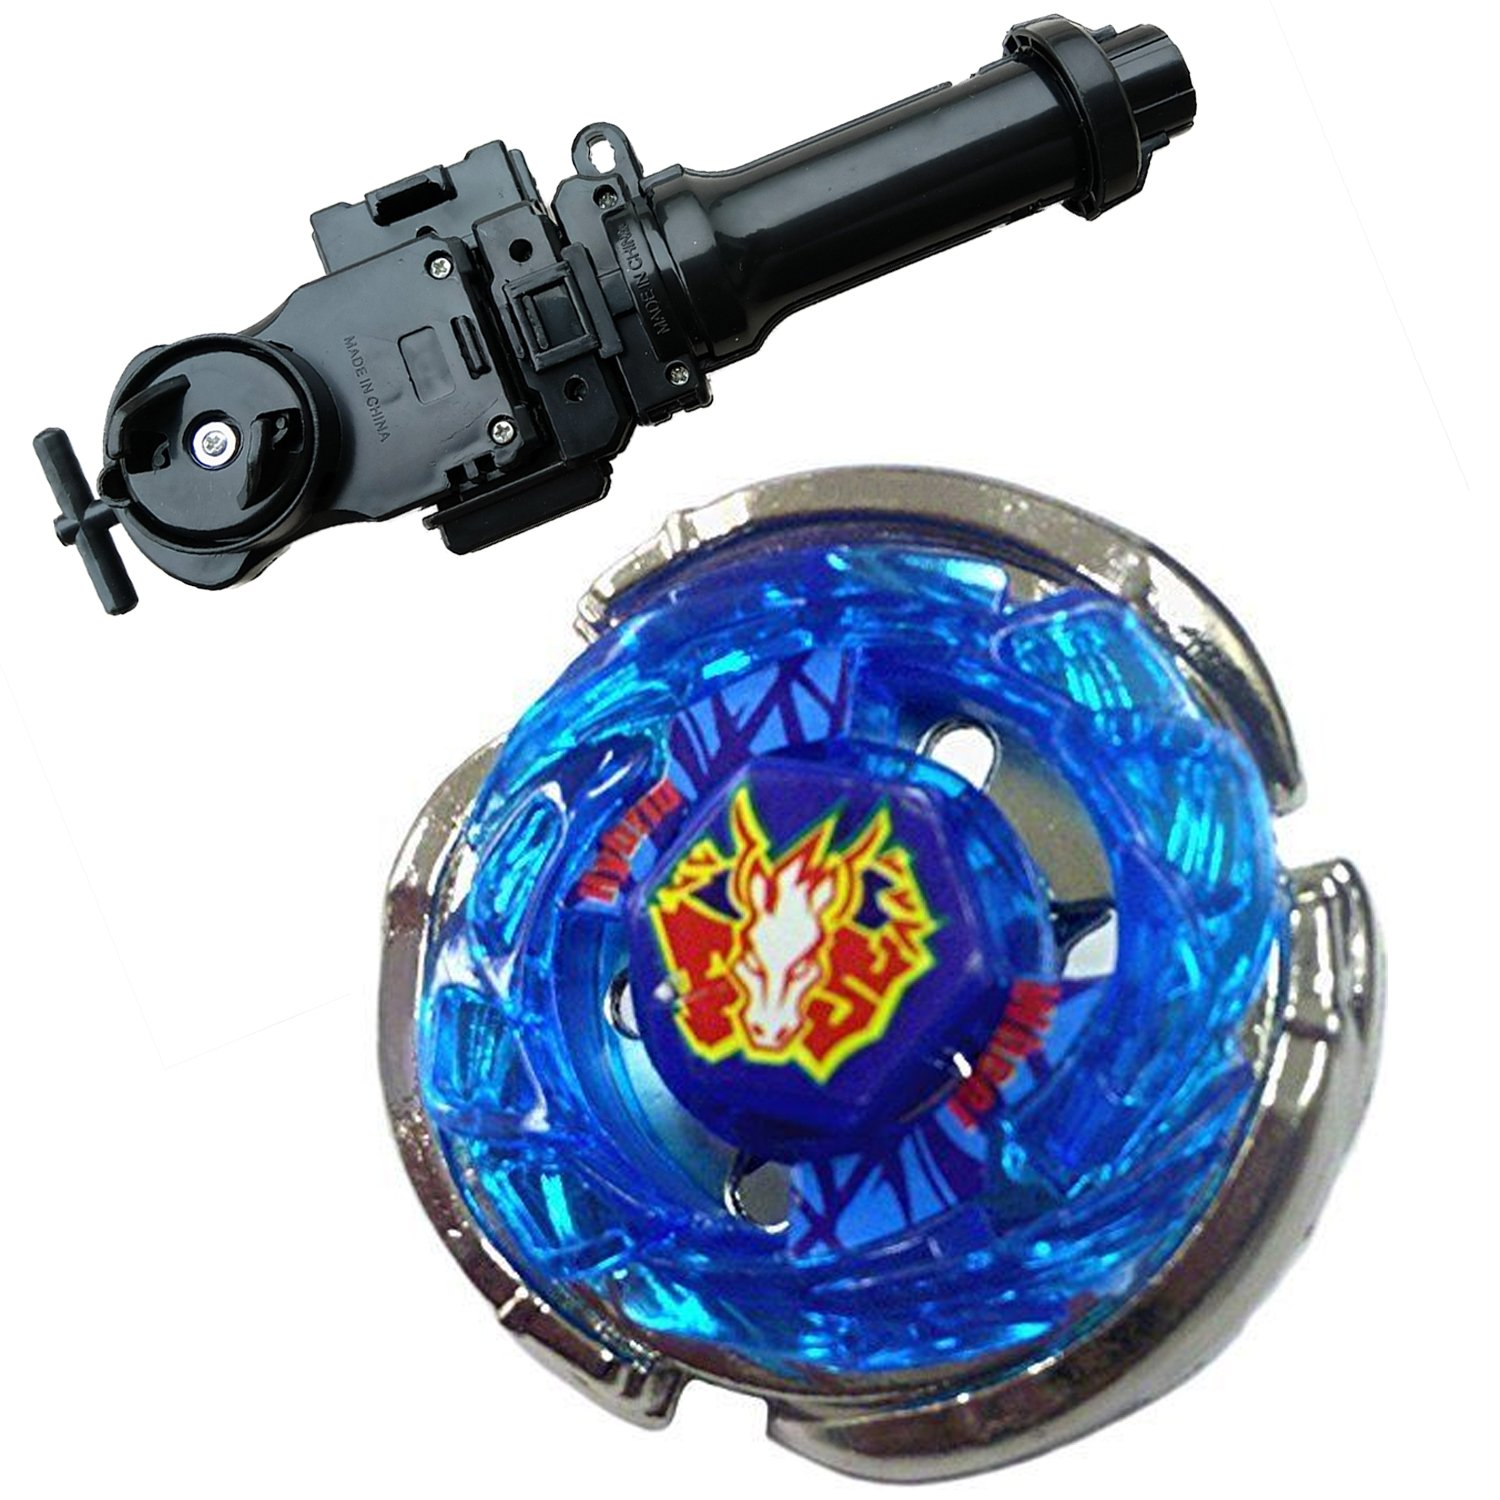 xsestore Lots BB-28 Storm Pegasus Metal 4D High Performance Game with Metal Fusion Fight Power Launcher Black + Launcher Grip Set CHINA